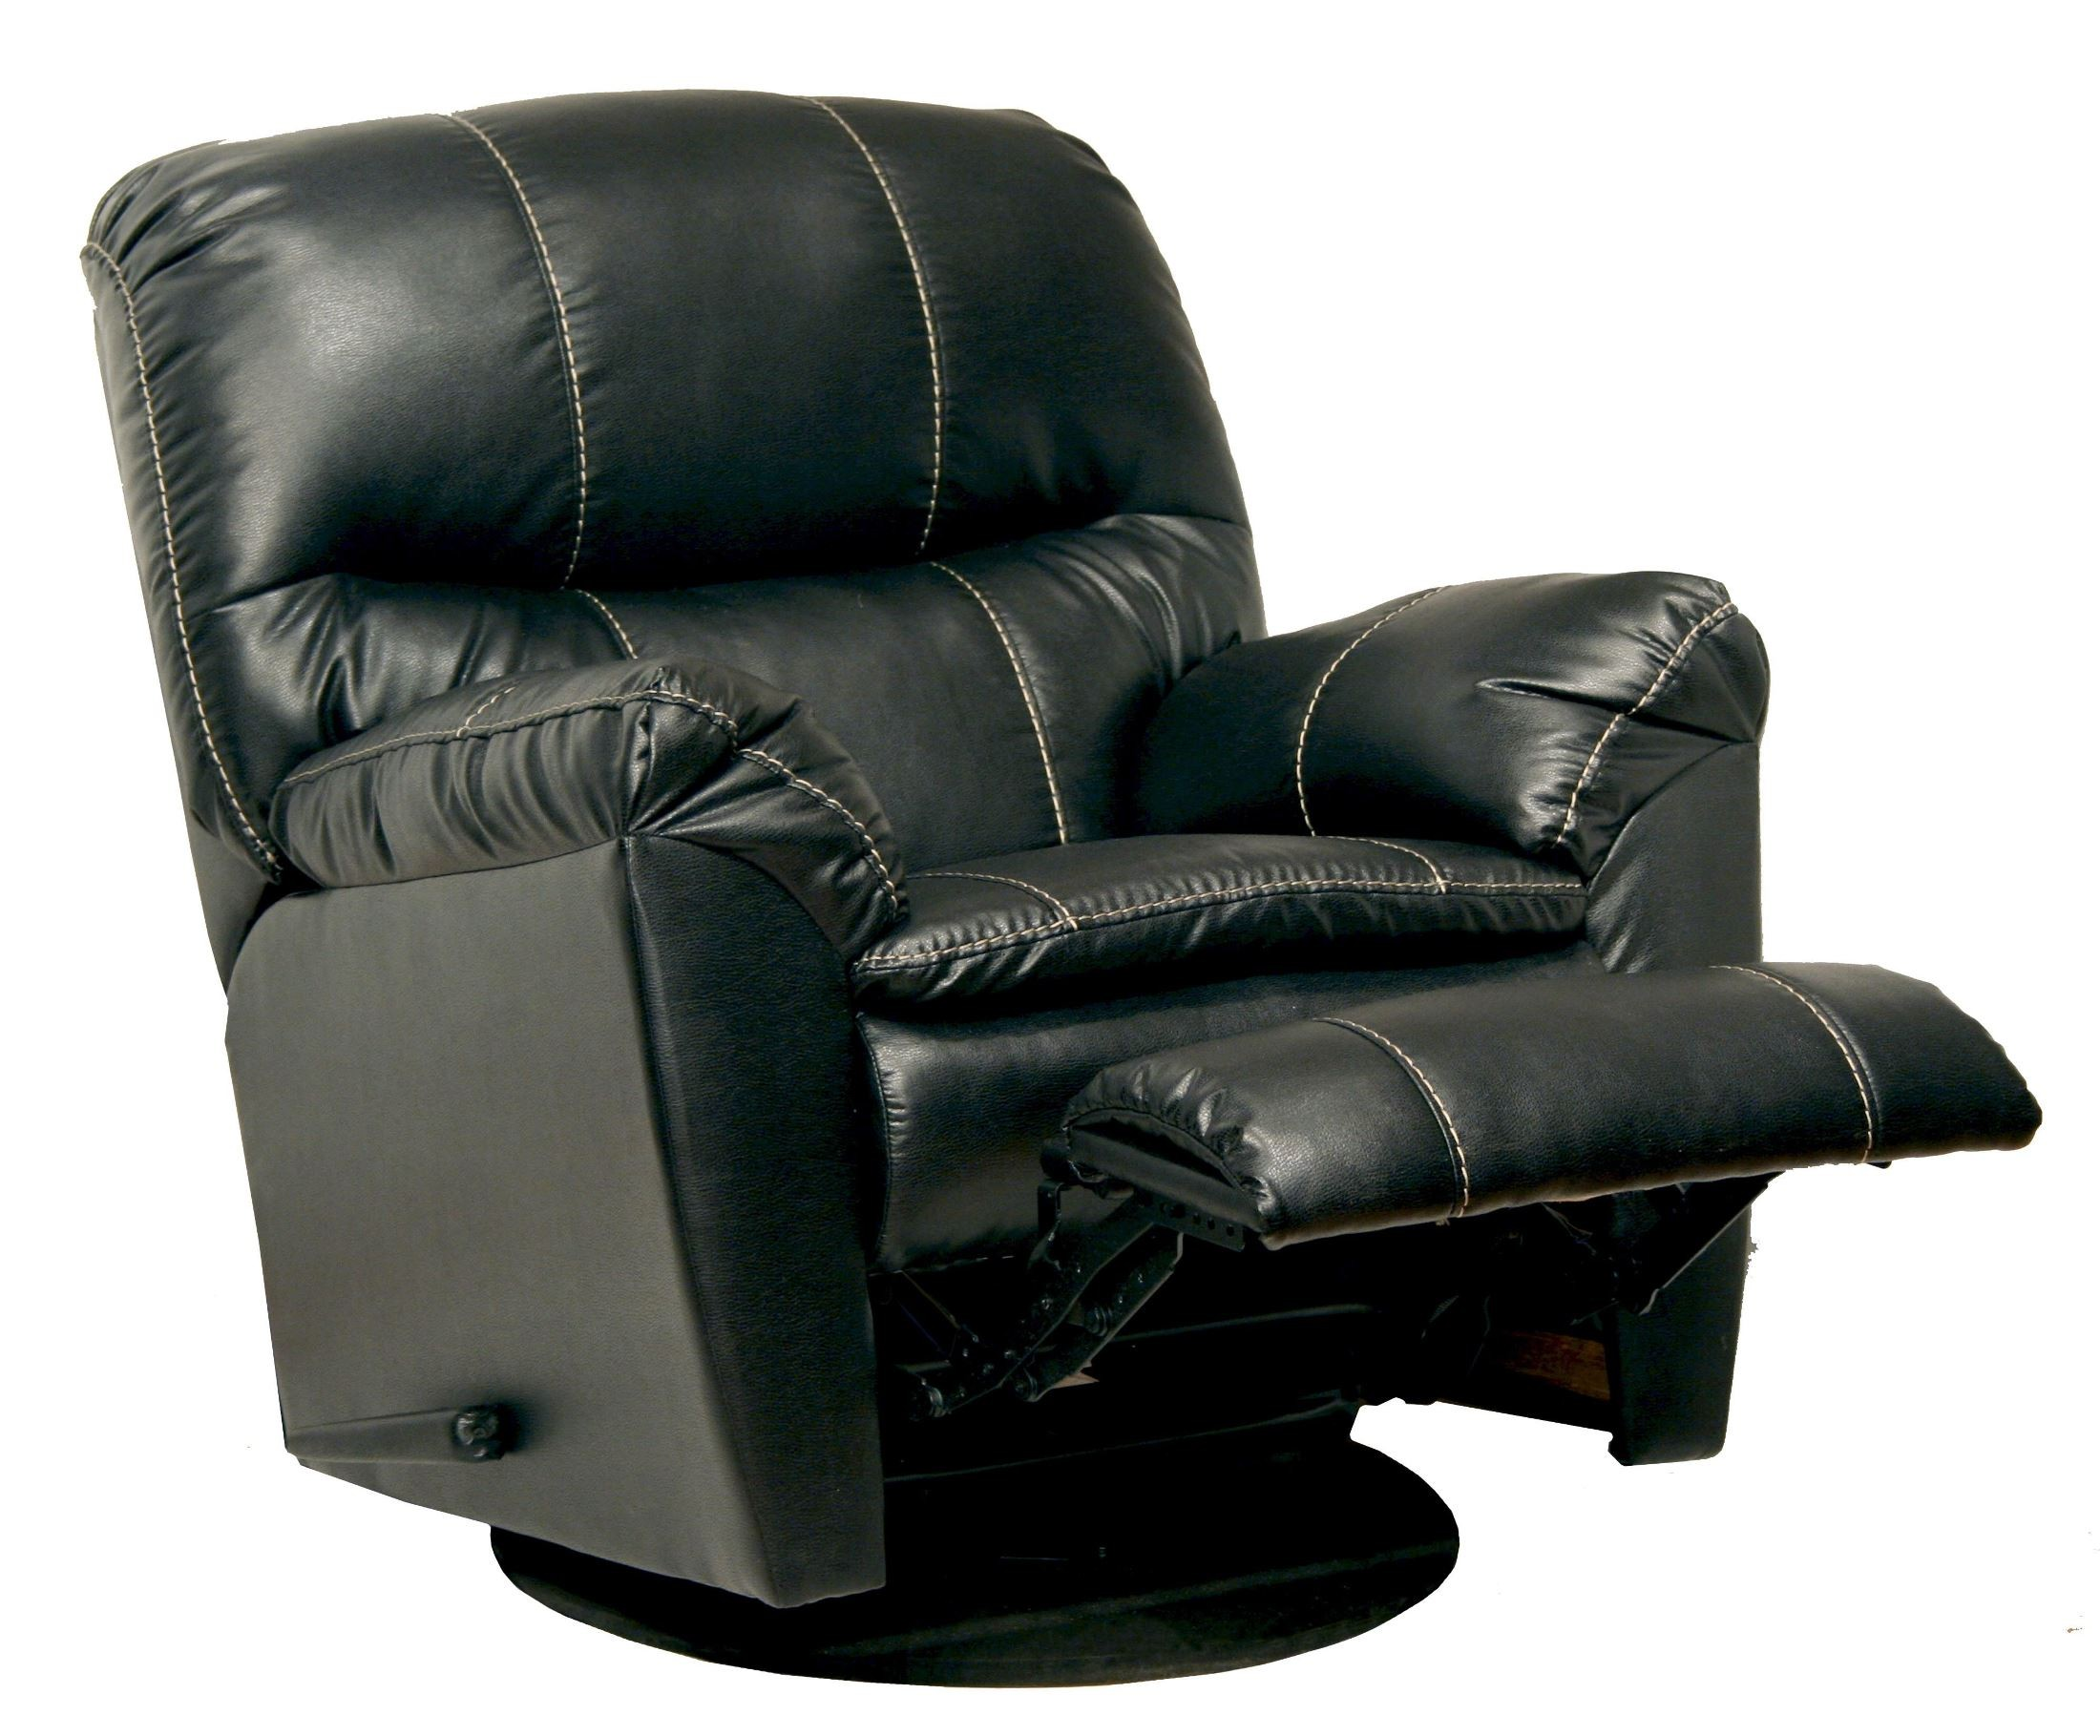 Black Swivel Chair Cosmo Black Leather Swivel Glider Recliner From Catnapper